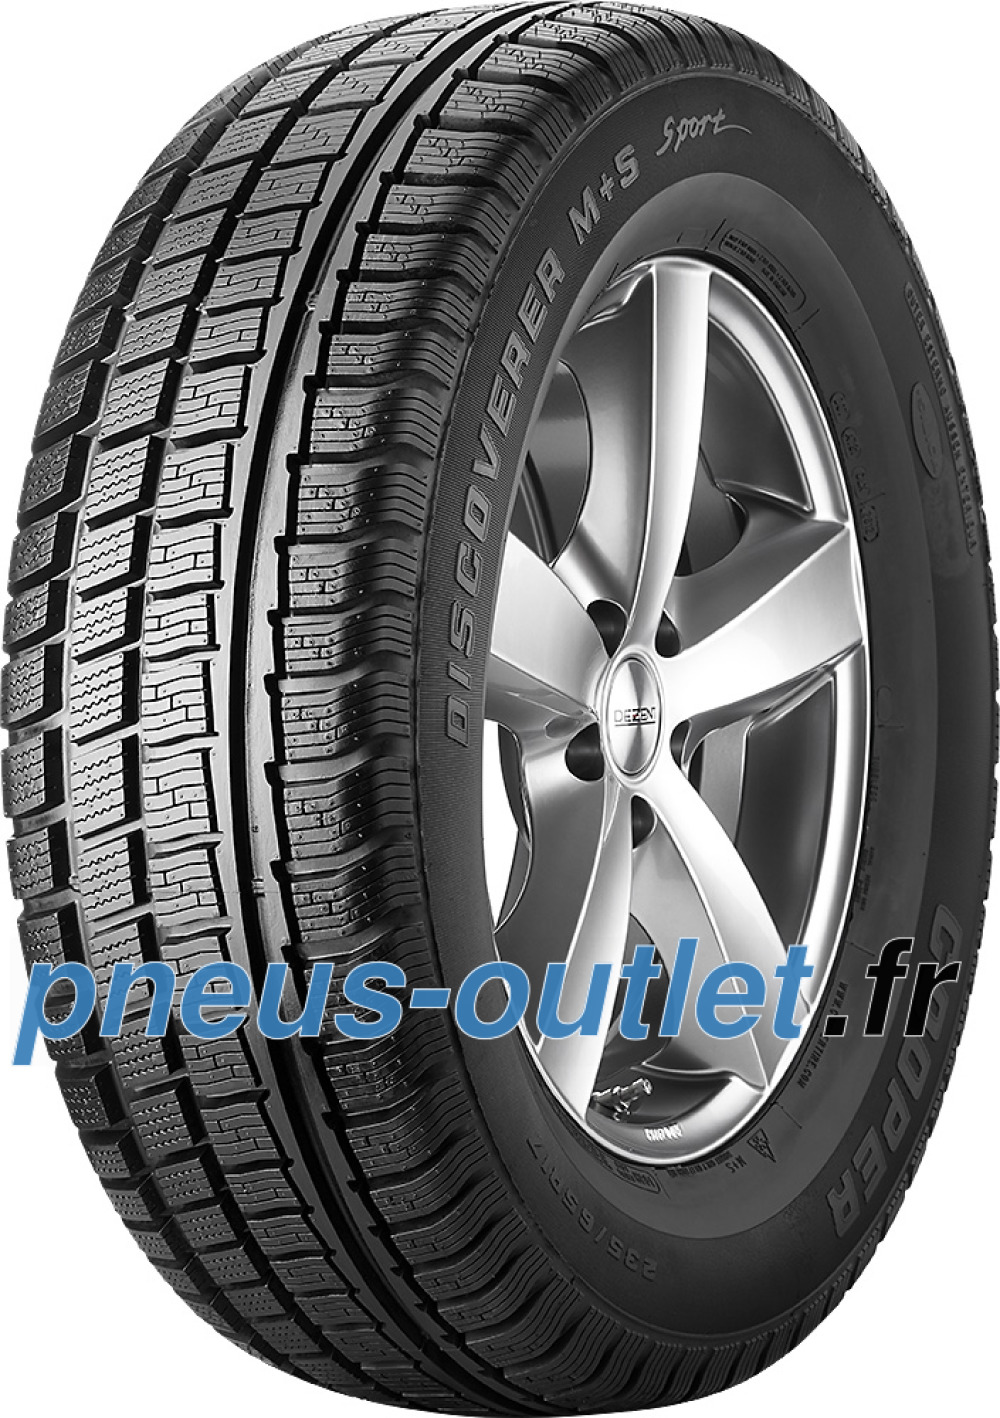 Cooper Discoverer M+S Sport ( 245/70 R16 107T BSS )